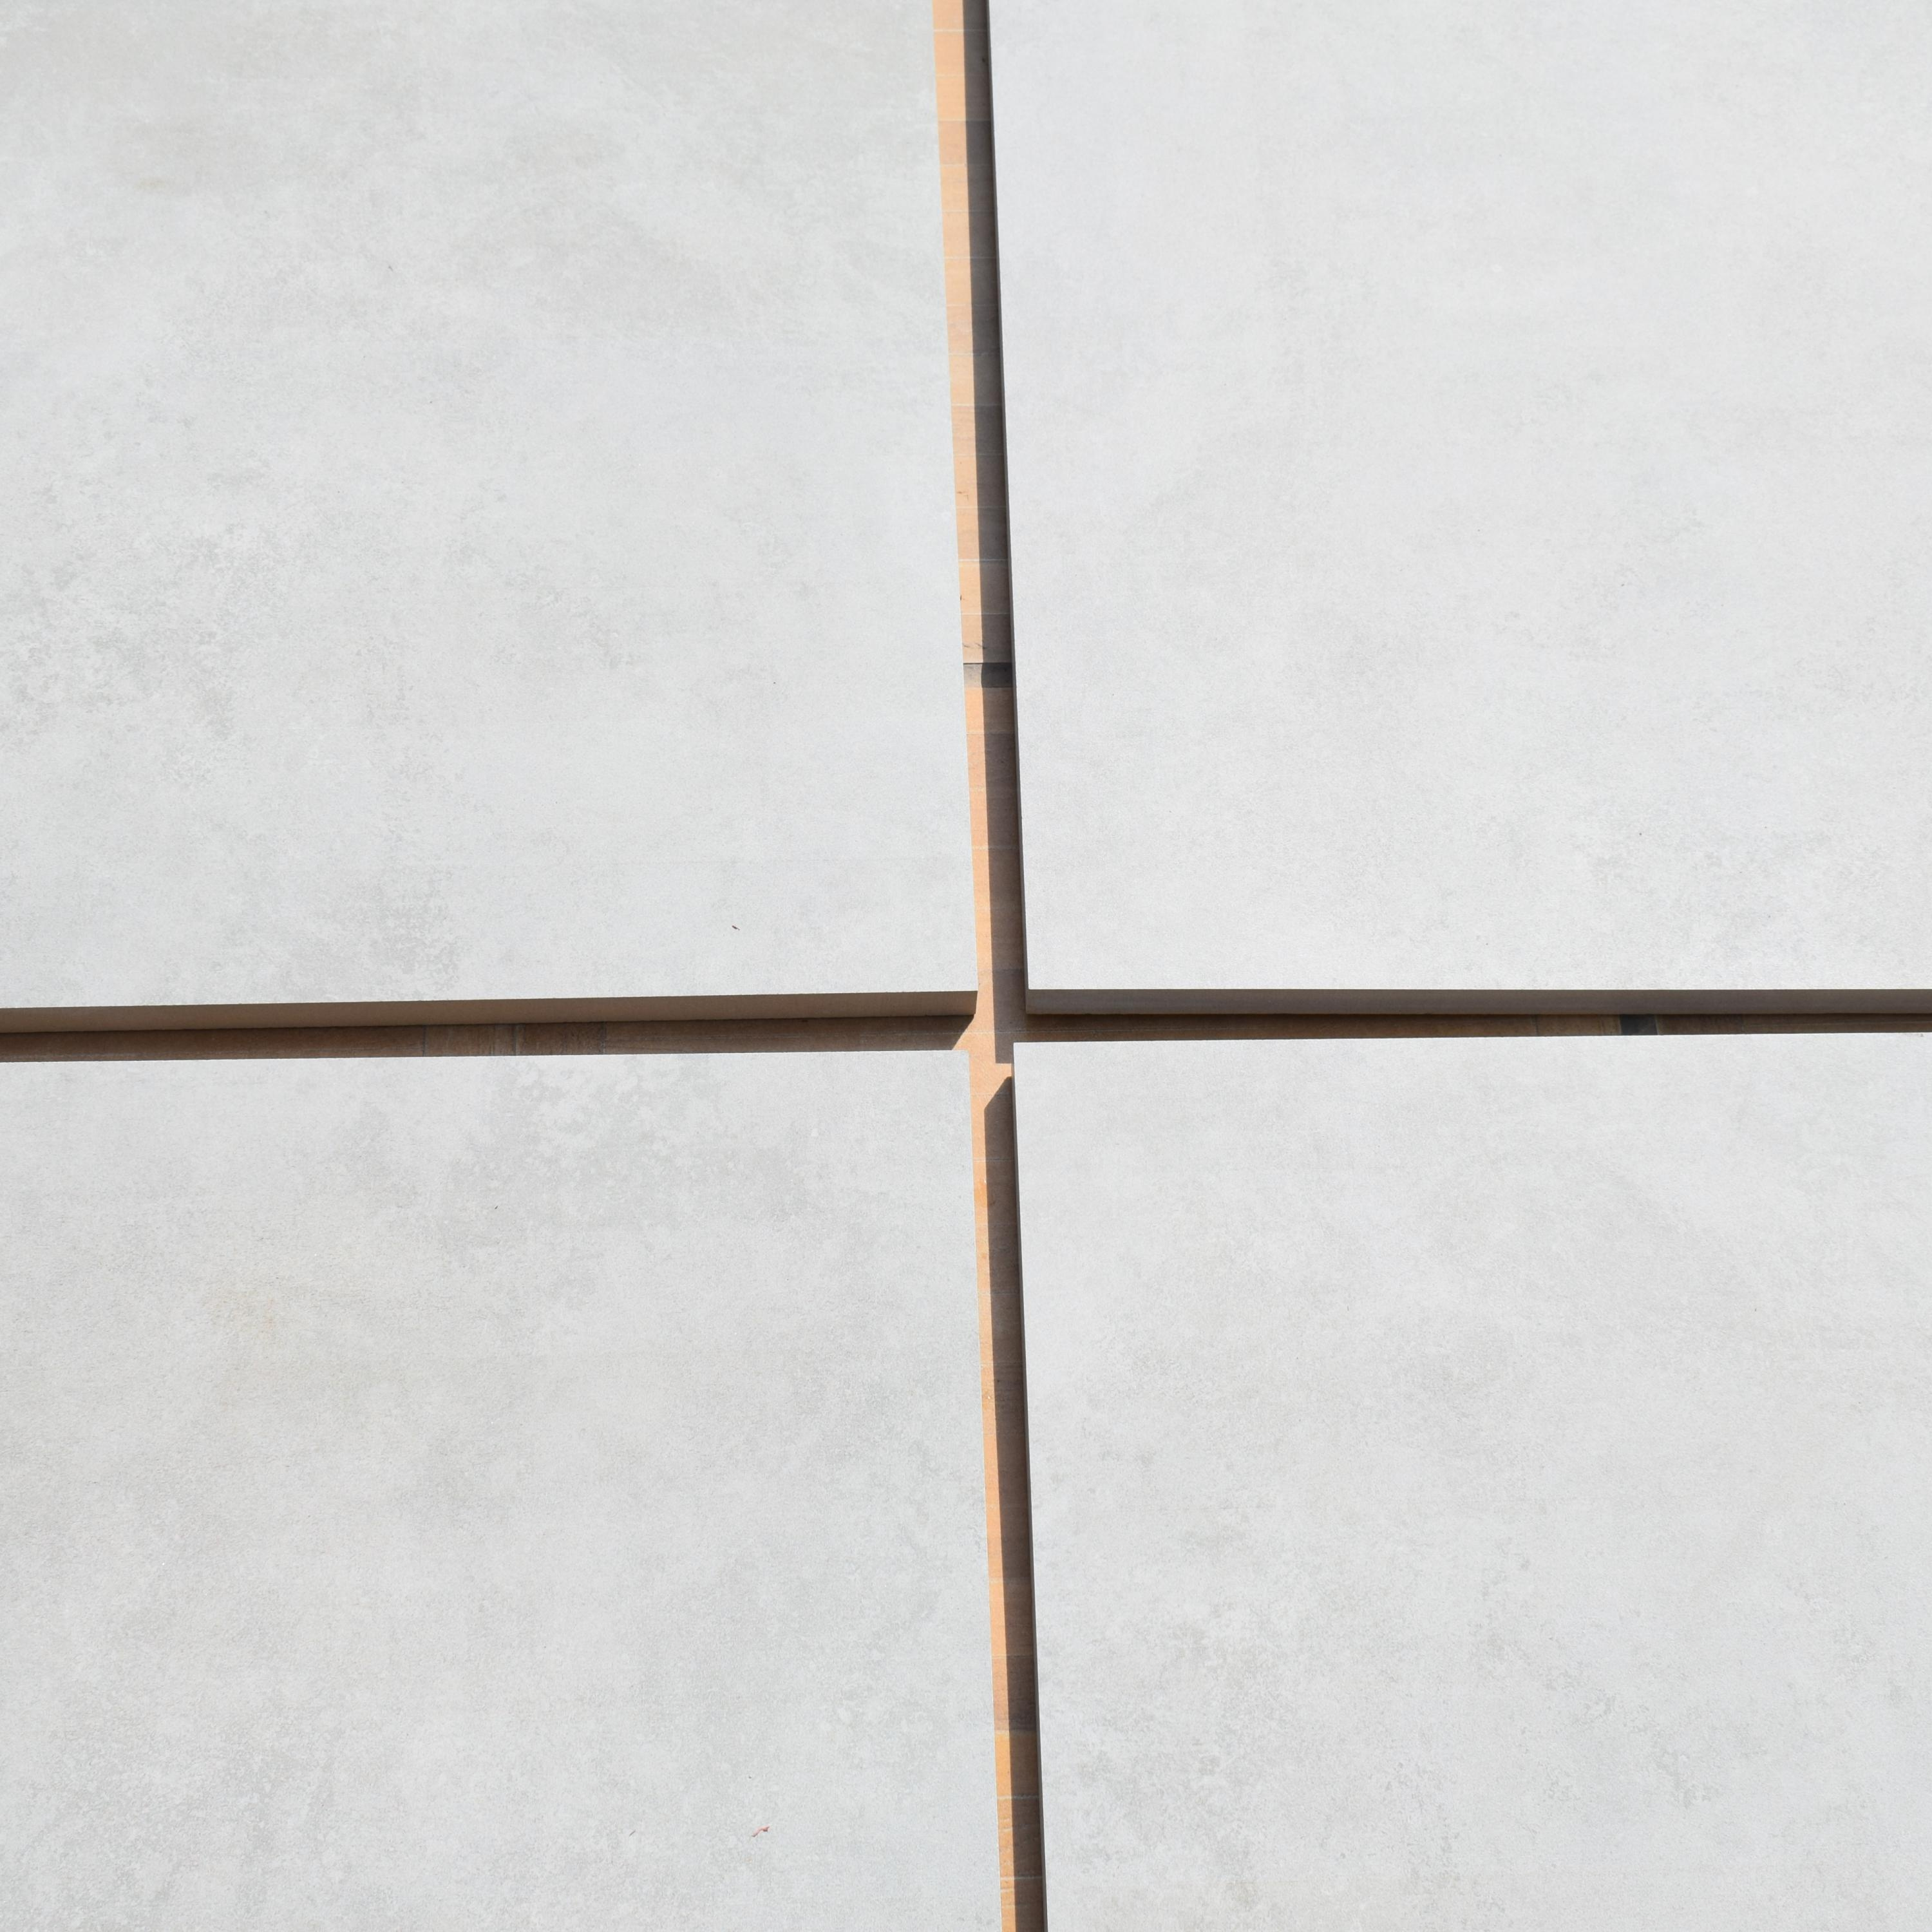 r11 cementino ash 20 mm thickness exterior out door rough heavy duty outdoor porcelain stone spanish tiles buy natural stone tiles exterior outdoor